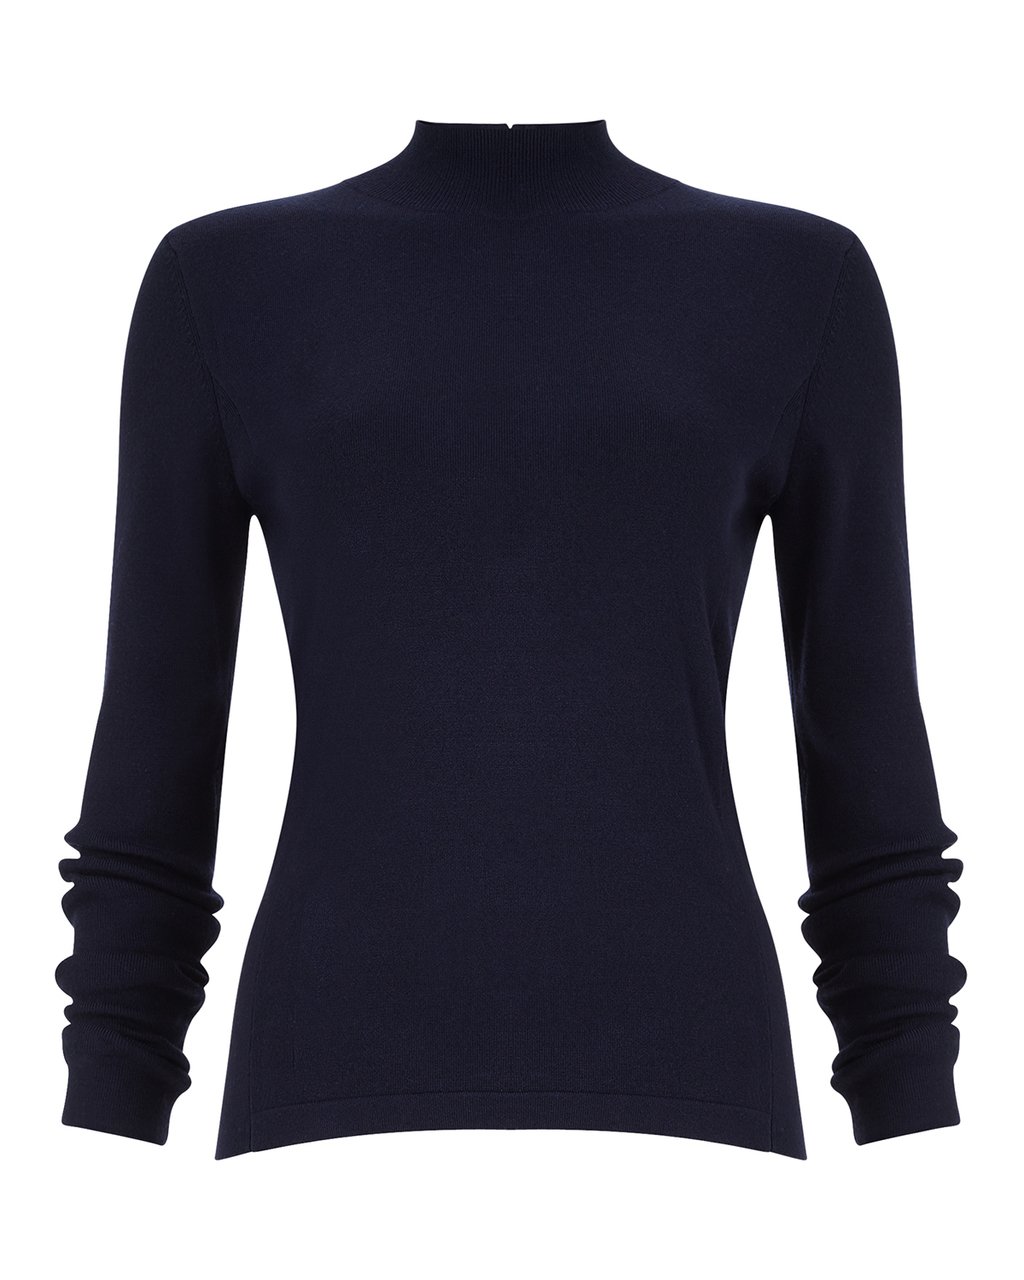 Rita Zip Back Knit - pattern: plain; neckline: high neck; style: standard; predominant colour: navy; occasions: casual, work, creative work; length: standard; fit: slim fit; sleeve length: long sleeve; sleeve style: standard; texture group: knits/crochet; pattern type: knitted - fine stitch; season: a/w 2015; wardrobe: basic